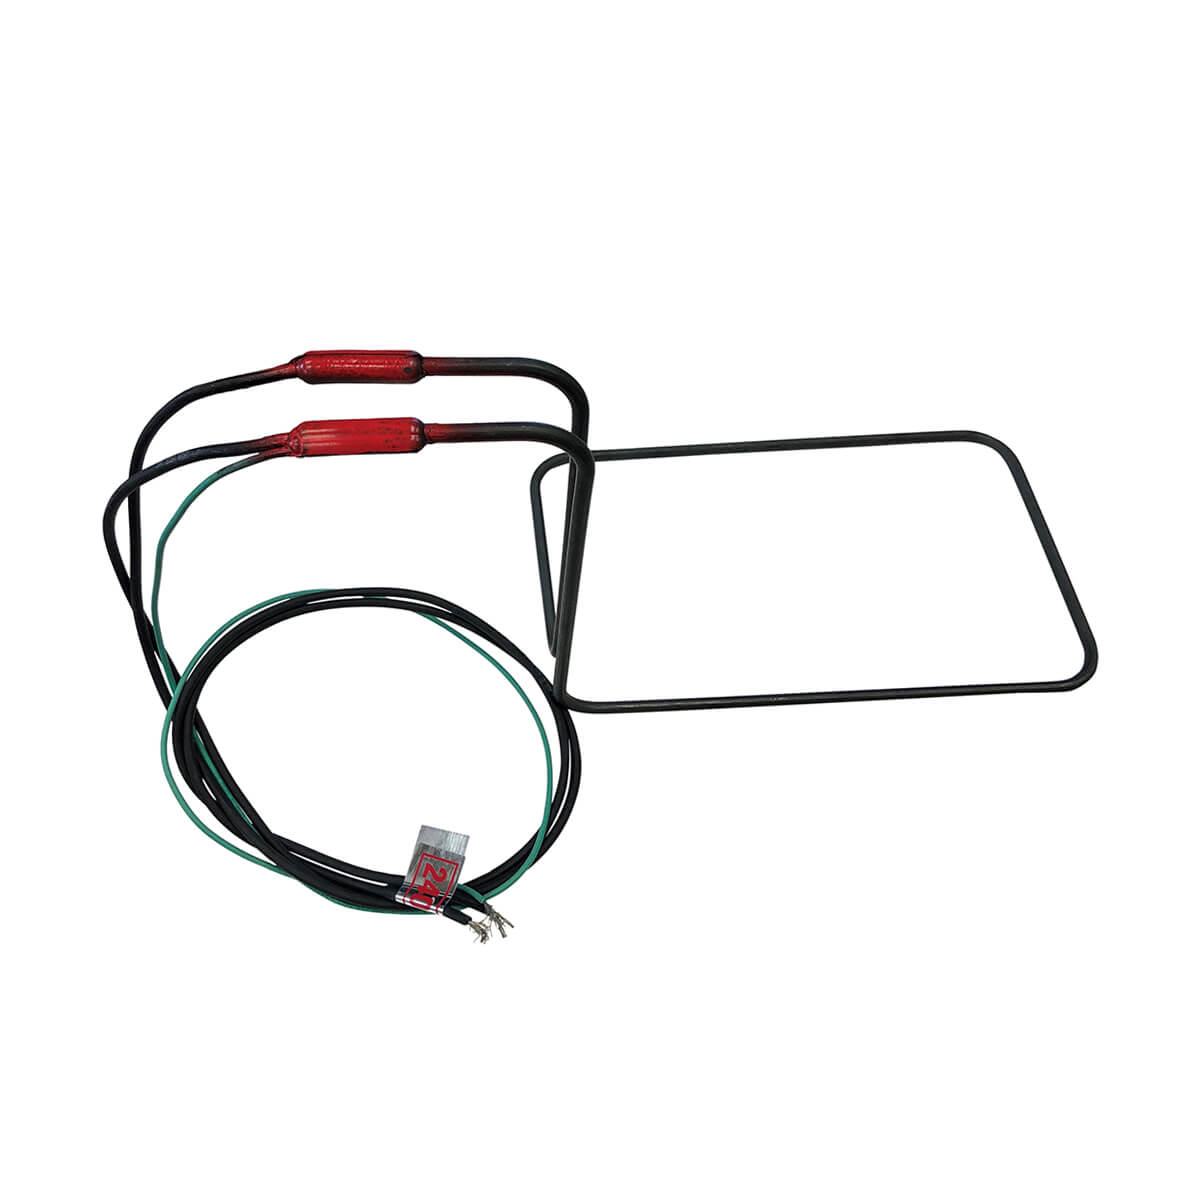 Heating Element for Super Pete Waterers - 240 V - 1000 W